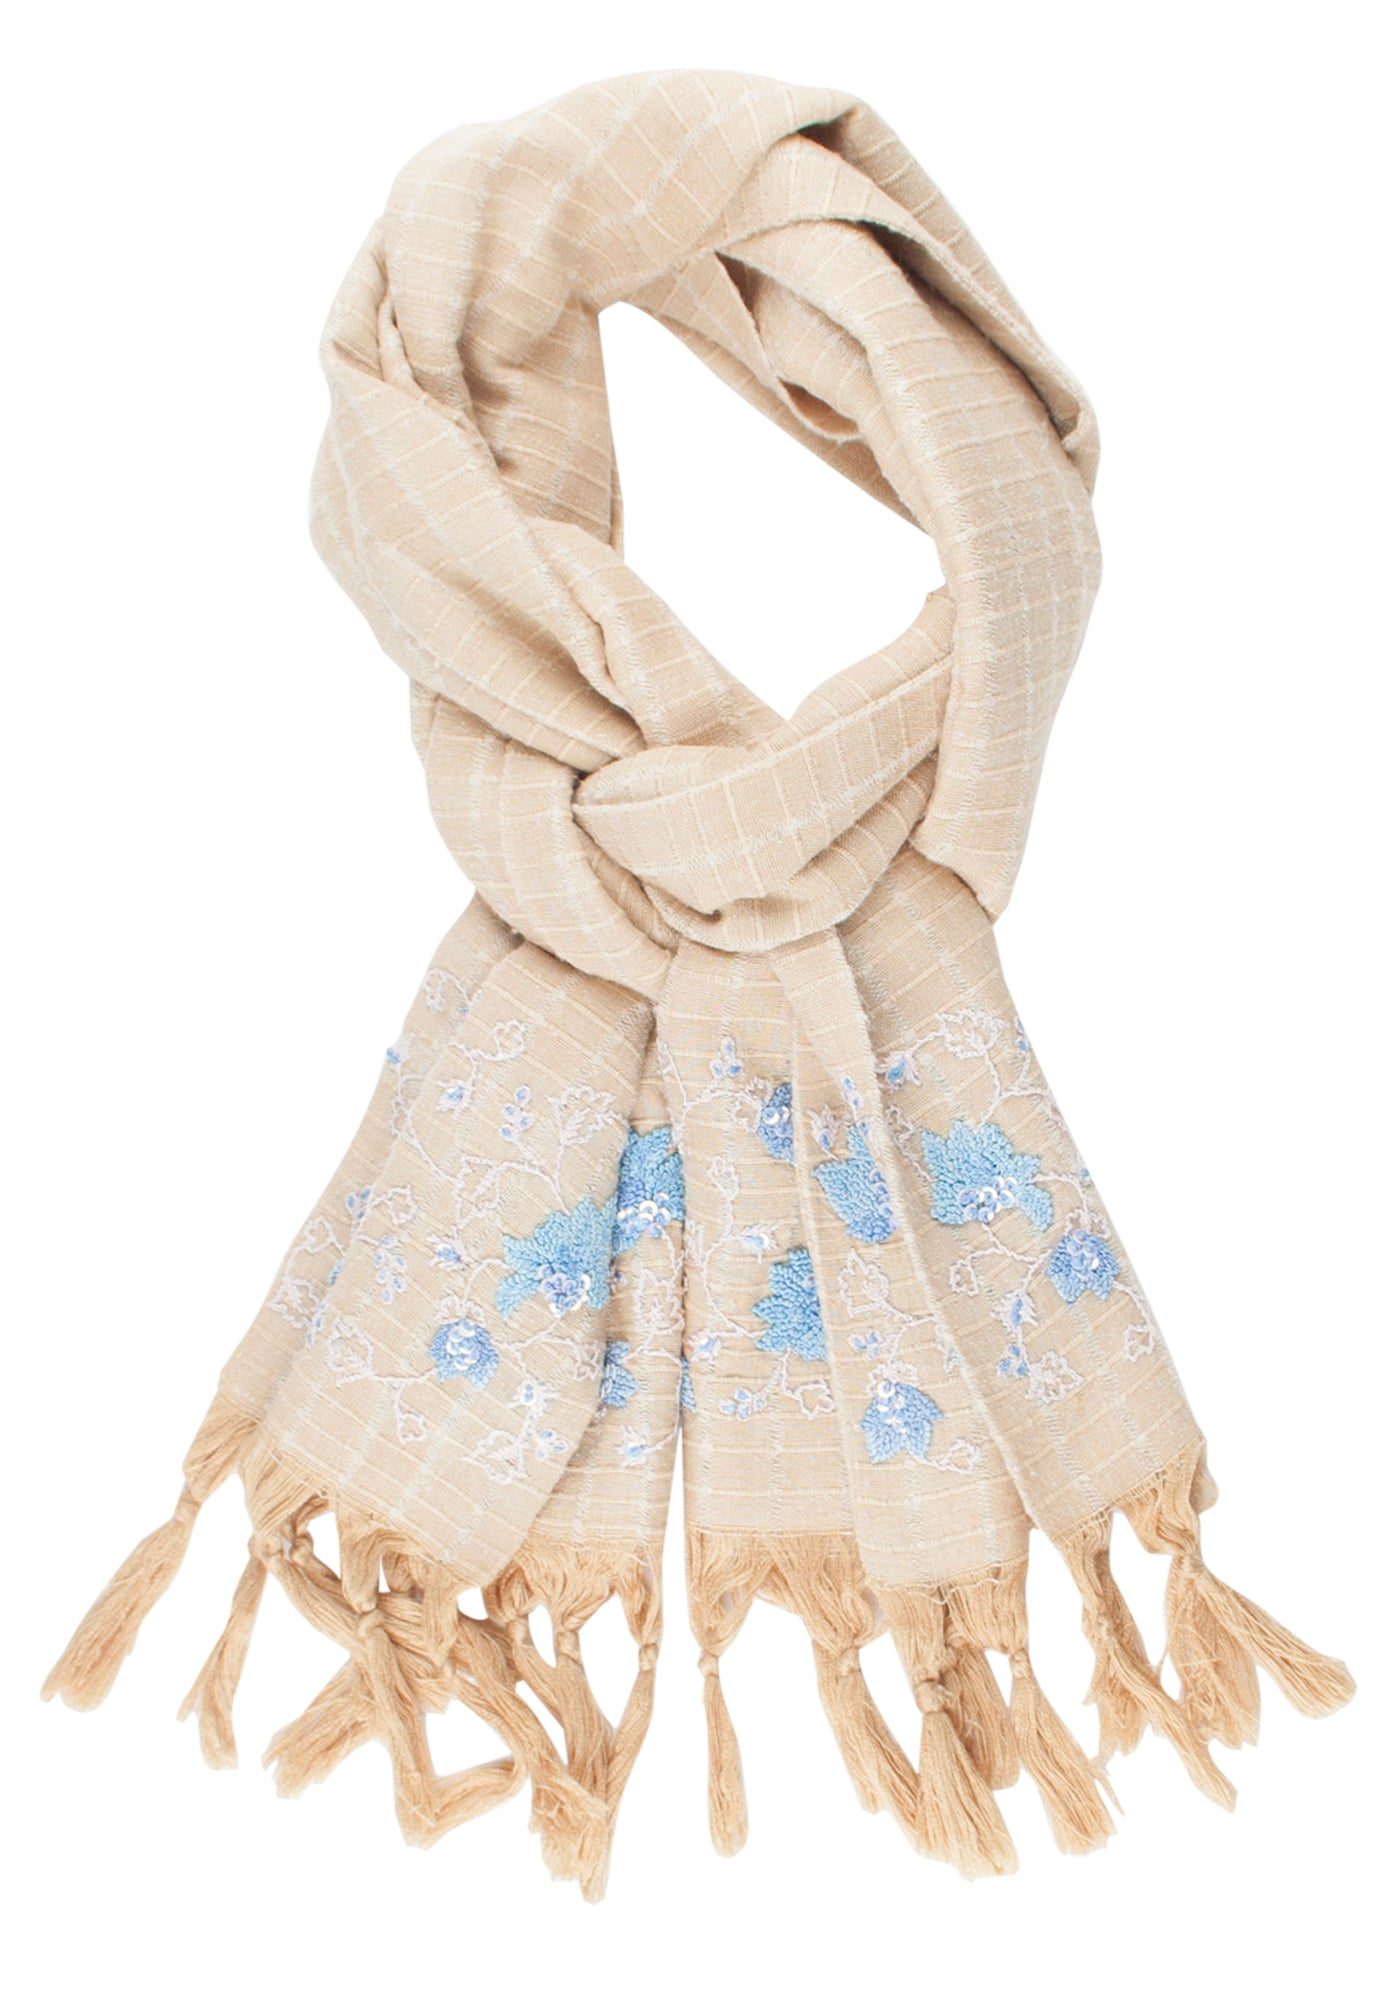 Hand Embroidered Scarf in Ahimsa Silk - MINC ecofashion